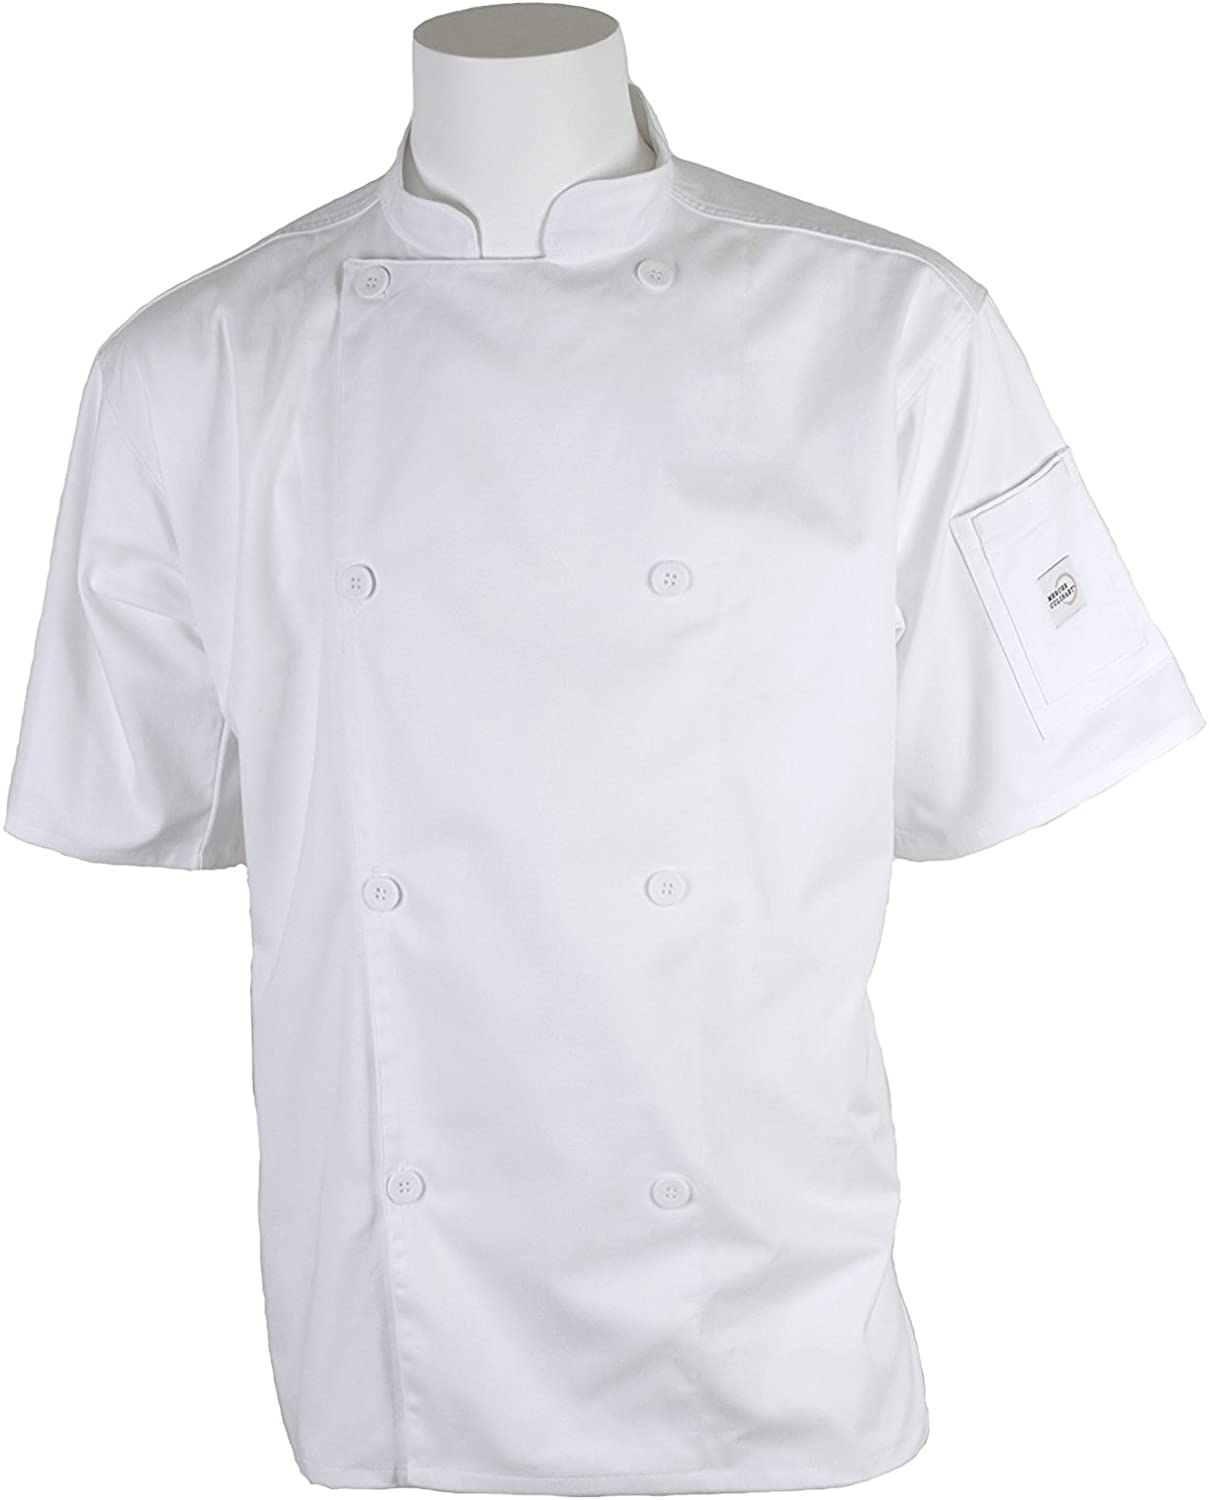 Mercer Culinary M61012WHL Genesis Men's Short Sleeve Chef Jacket with Traditional Buttons, Large, White